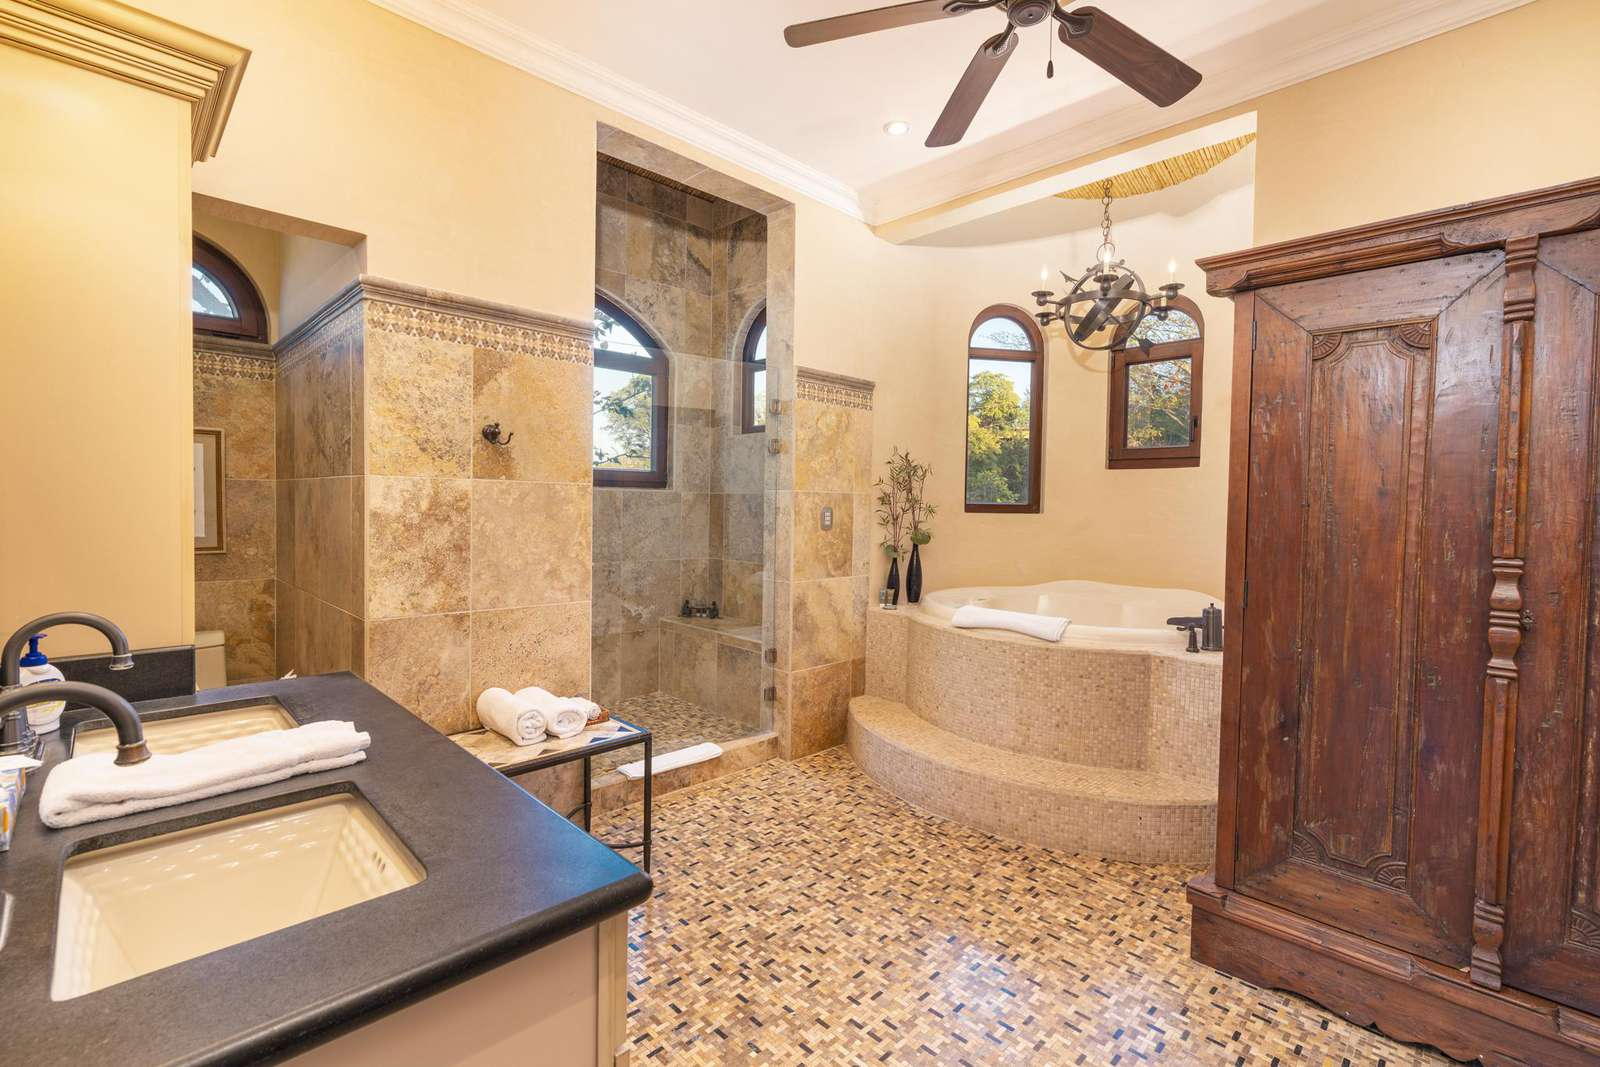 2nd master bathroom with oversized jacuzzi, walk in shower, dual vanity